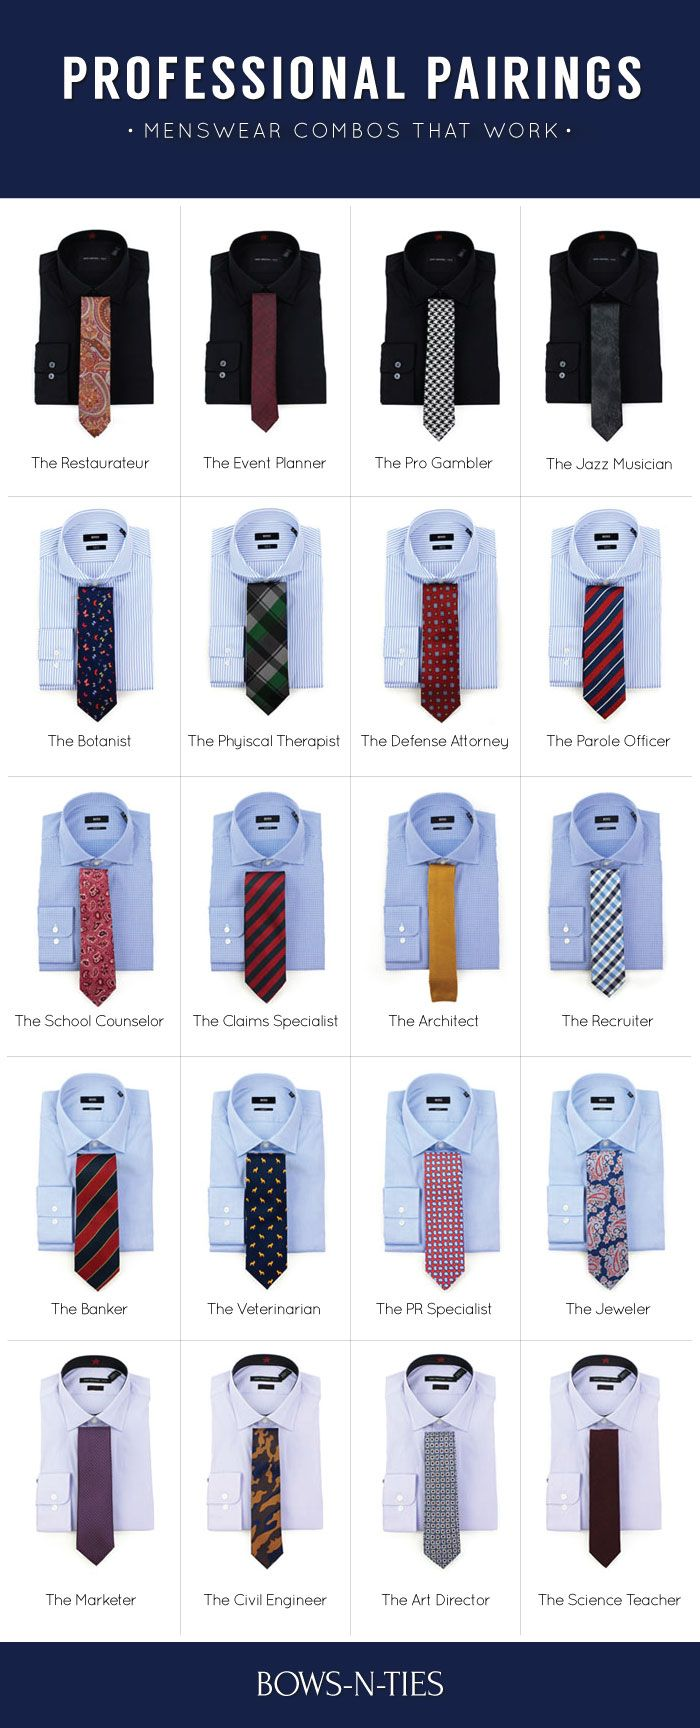 Ties to wear by Profession. Twenty MENSWEAR combos that WORK | Professional Pairings.